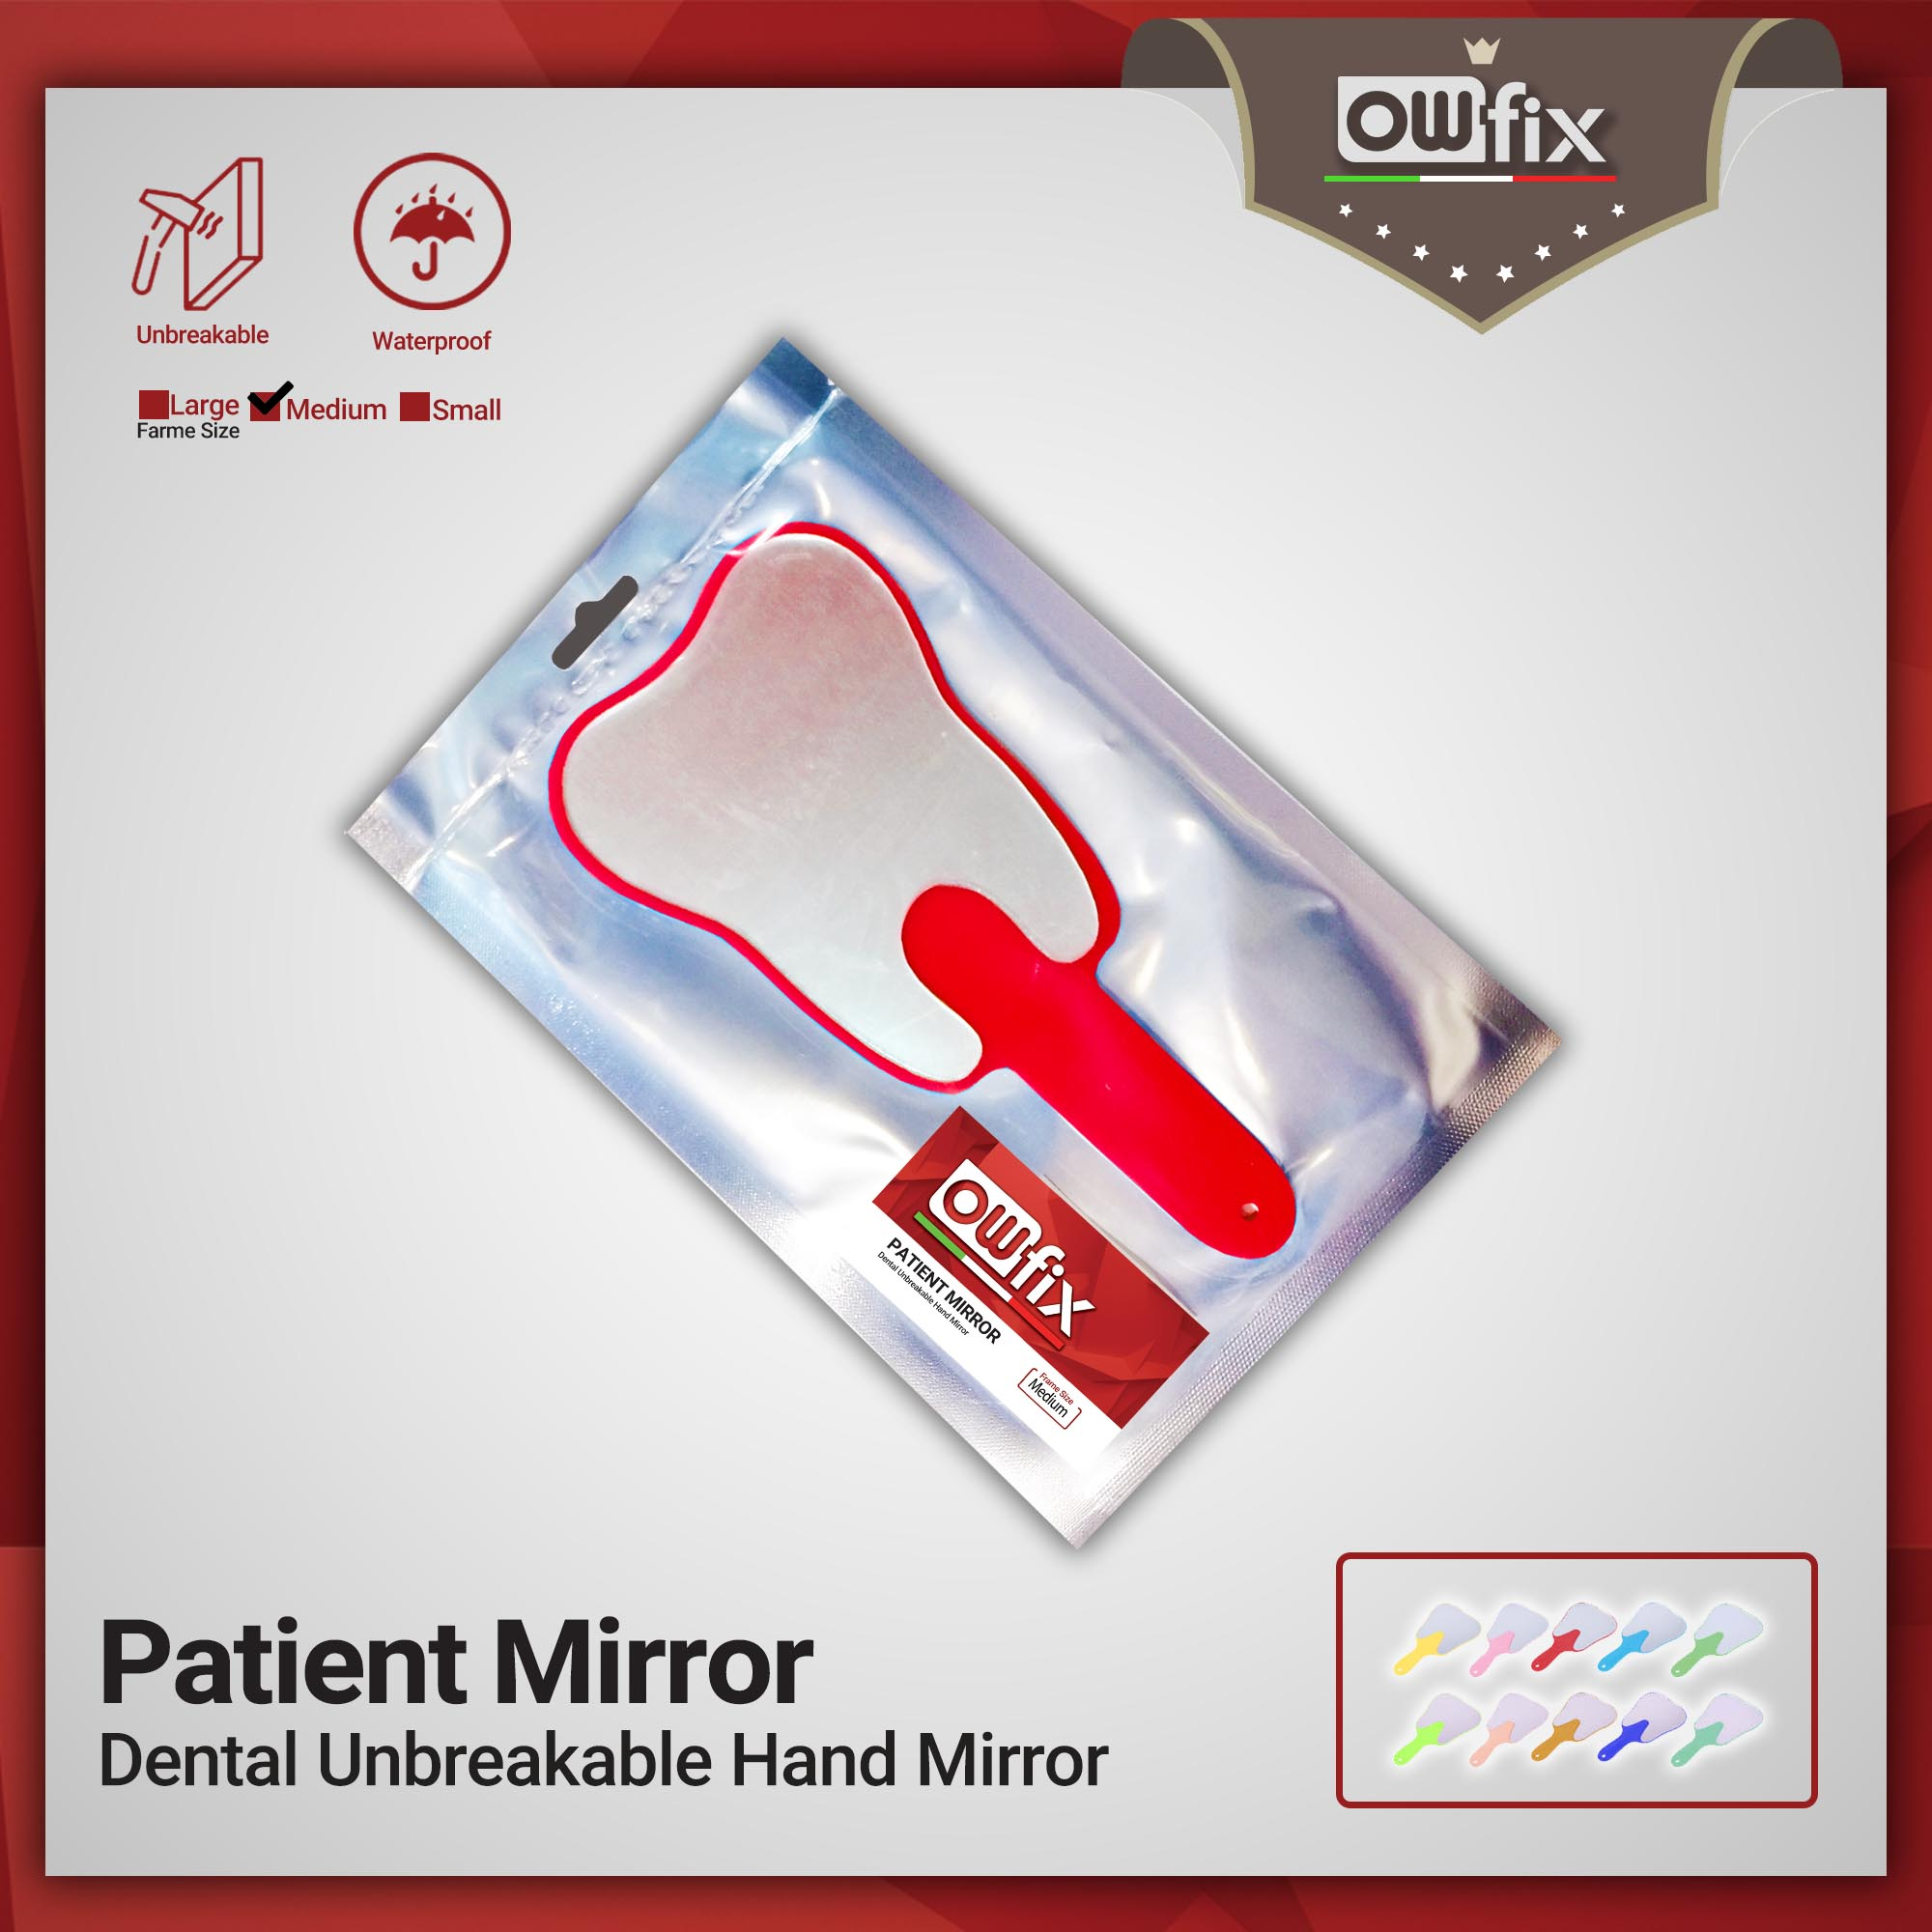 Dental Unbreakable Hand Mirror pationt owfix